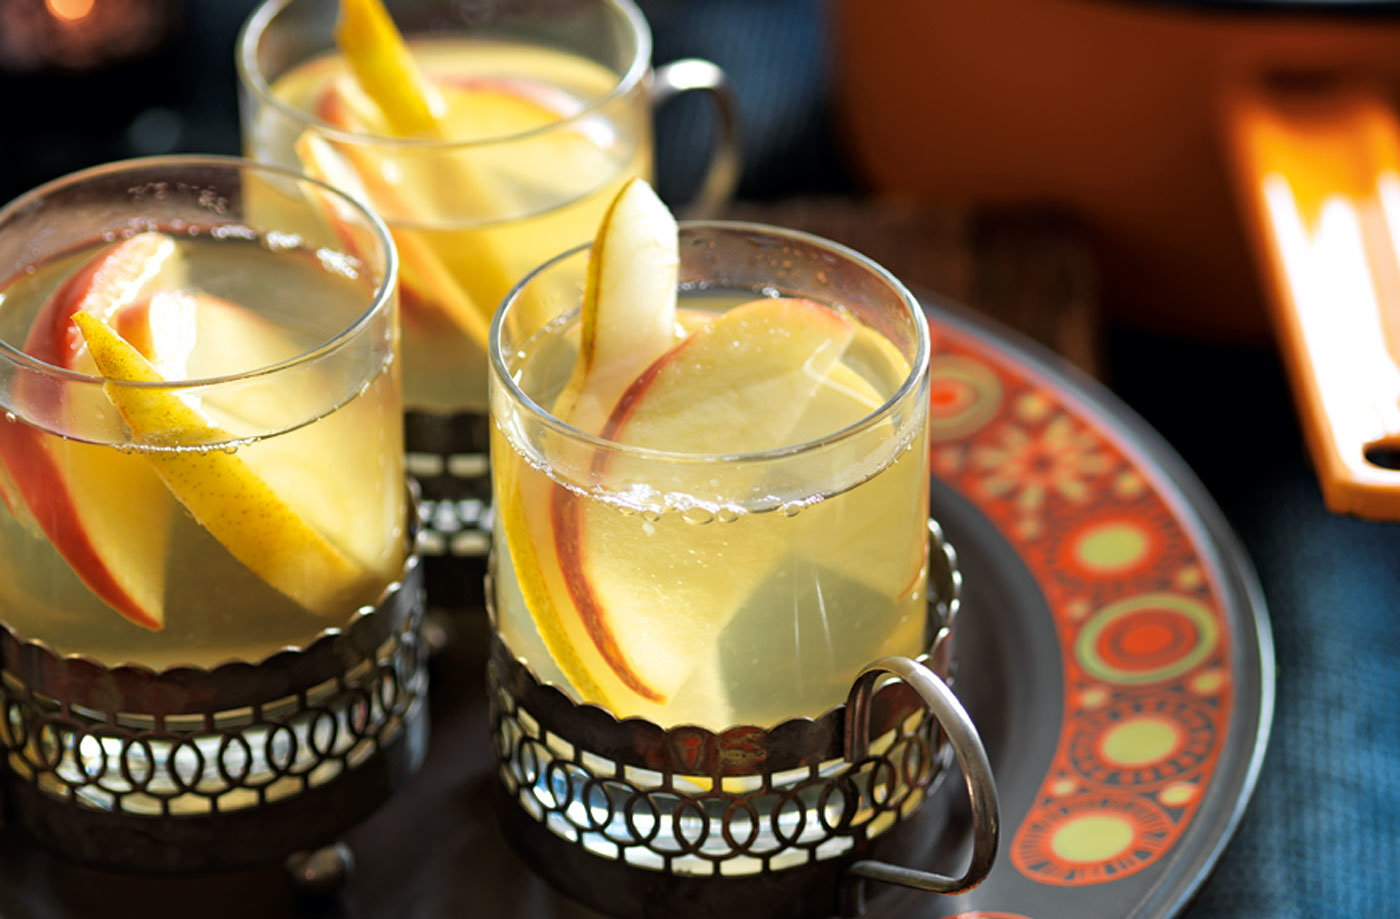 White wine spiced apple and pear punch recipe